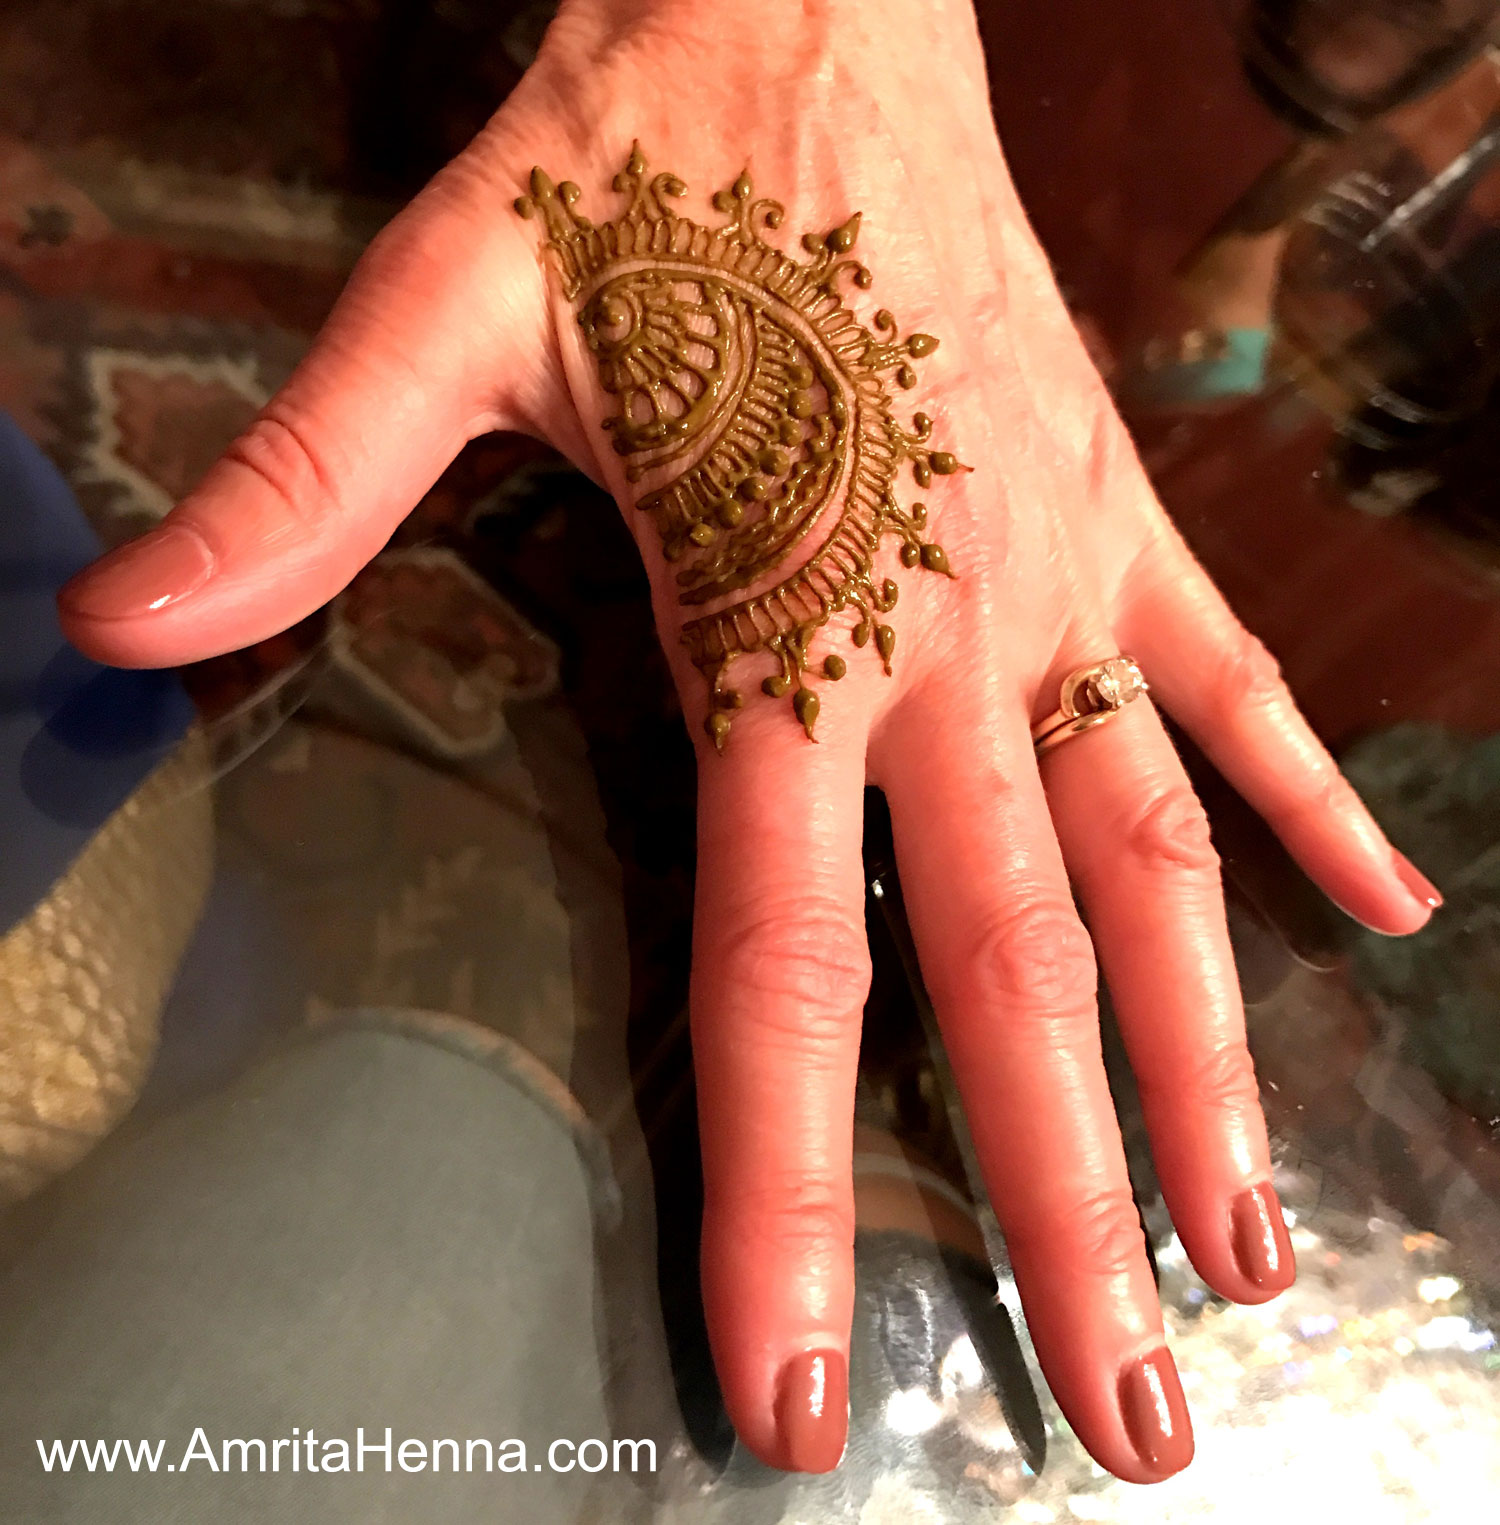 TOP 10 EASY HENNA DESIGNS THAT YOU CAN DO IN 2 MINUTES - 10 BEST DIY MEHNDI DESIGNS THAT ARE QUICK AND EASY - TOP 10 SIMPLE AND QUICK HENNA MEHENDI DESIGNS FOR BEGINNERS - DIY EASY 2 MINUTE HENNA TATTOO DESIGNS - TOP 10 MEHANDI DESIGNS FOR STARTERS THAT ARE EASY AND QUICK -  TOP 10 EASY AND BEAUTIFUL 2 MINUTE HENNA DESIGNS FOR KIDS - TOP 10 EASY AND QUICK DIY 2 MINUTE HENNA DESIGNS